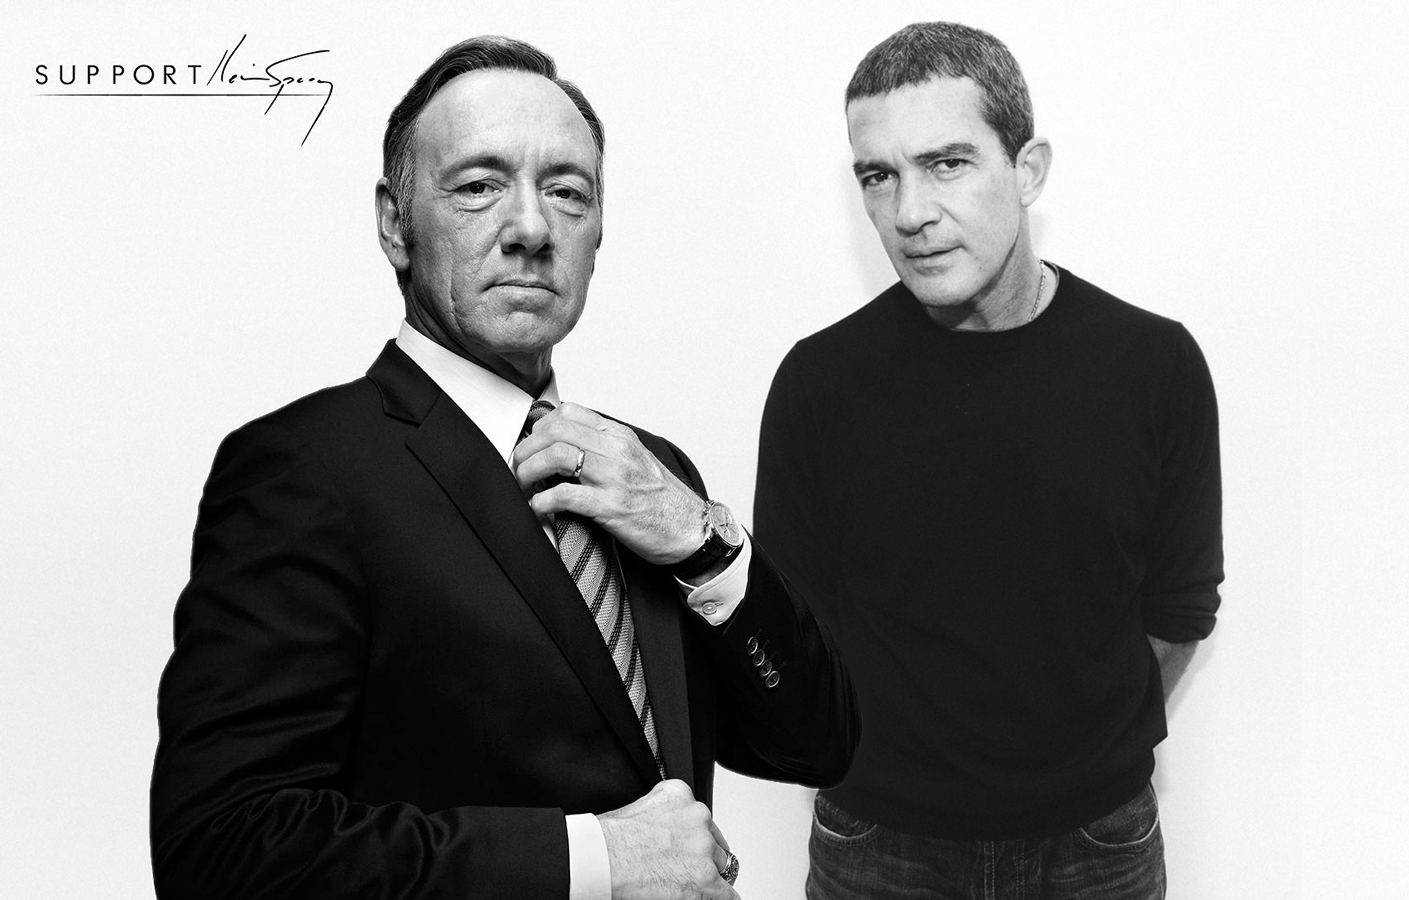 kevin spacey antonio banderas supportkevinspacey.com